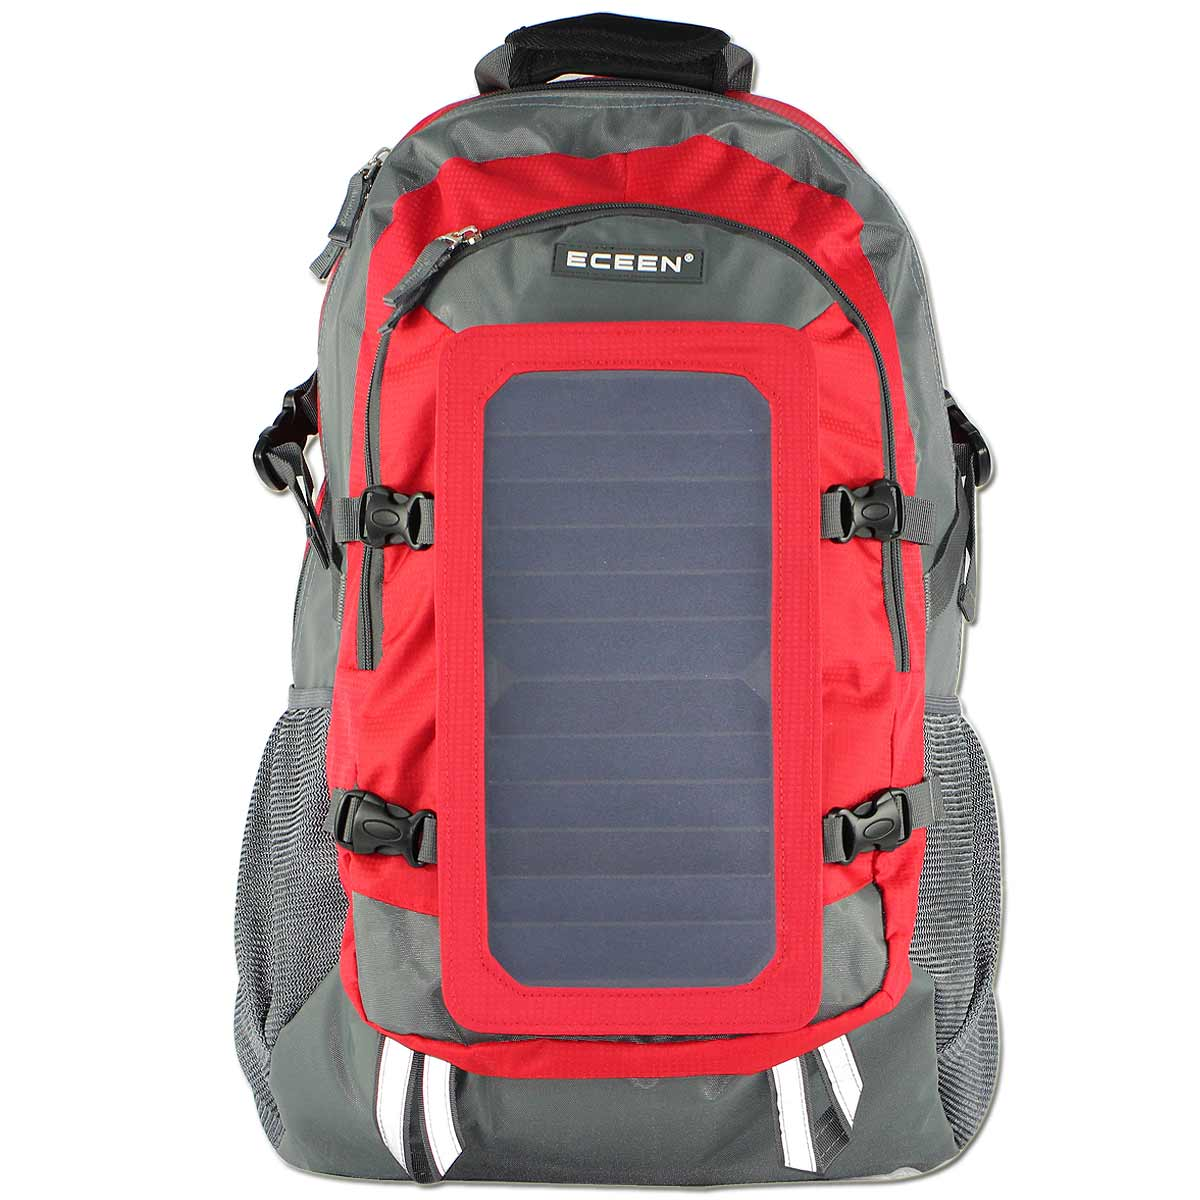 Eceen Solar Backpack Solar Charger Bag With 7 Watts Solar